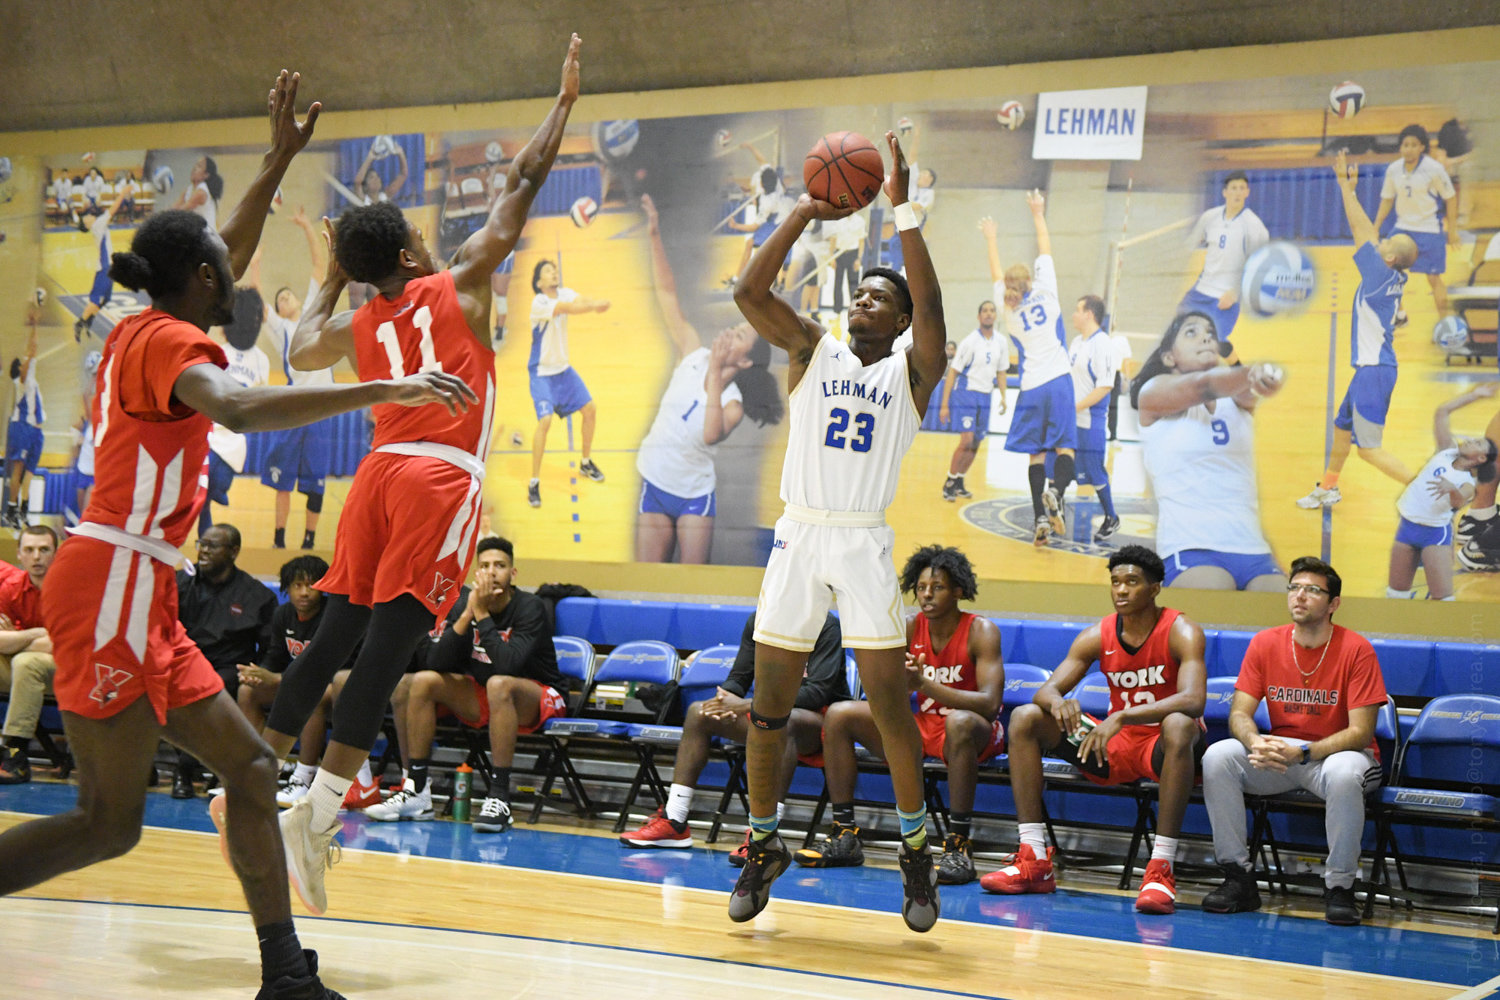 Lehman College junior Isaiah Geathers scored a combined 29 points in the Lightning's two games last week, finishing 1-1 in CUNYAC play.